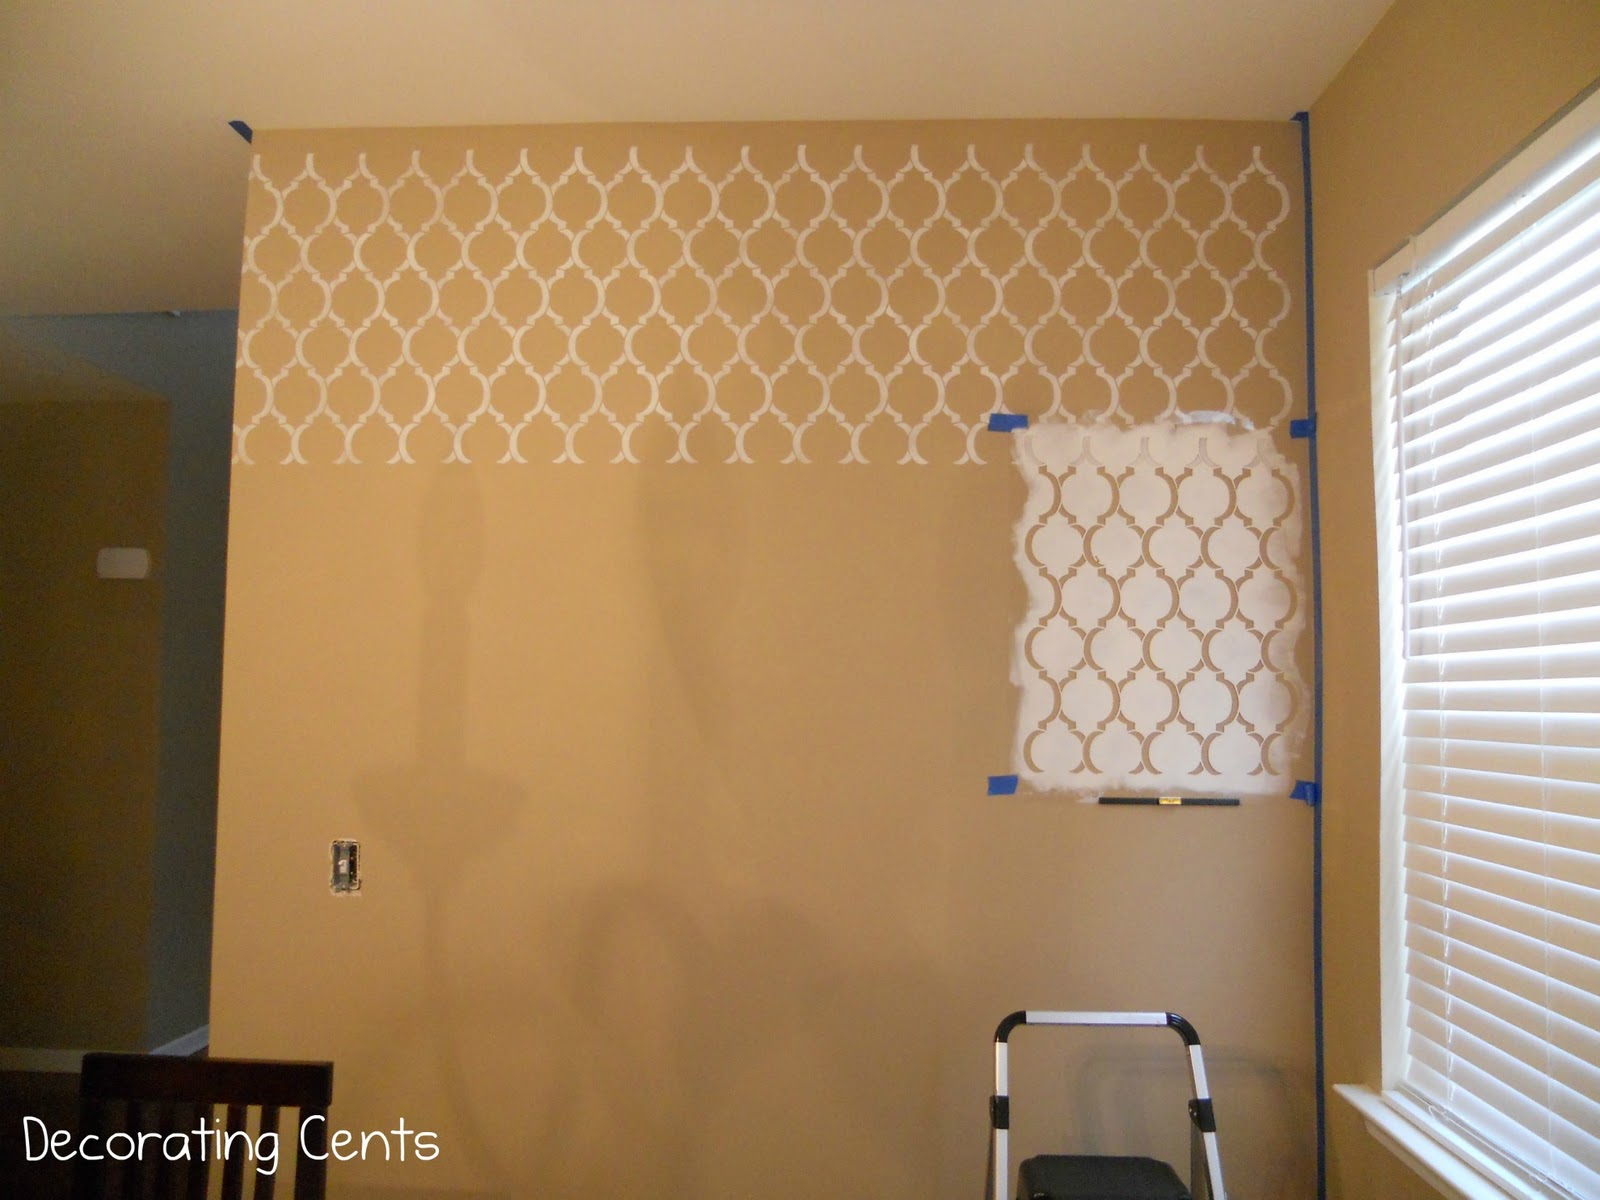 decorating cents a stenciled wall. Black Bedroom Furniture Sets. Home Design Ideas